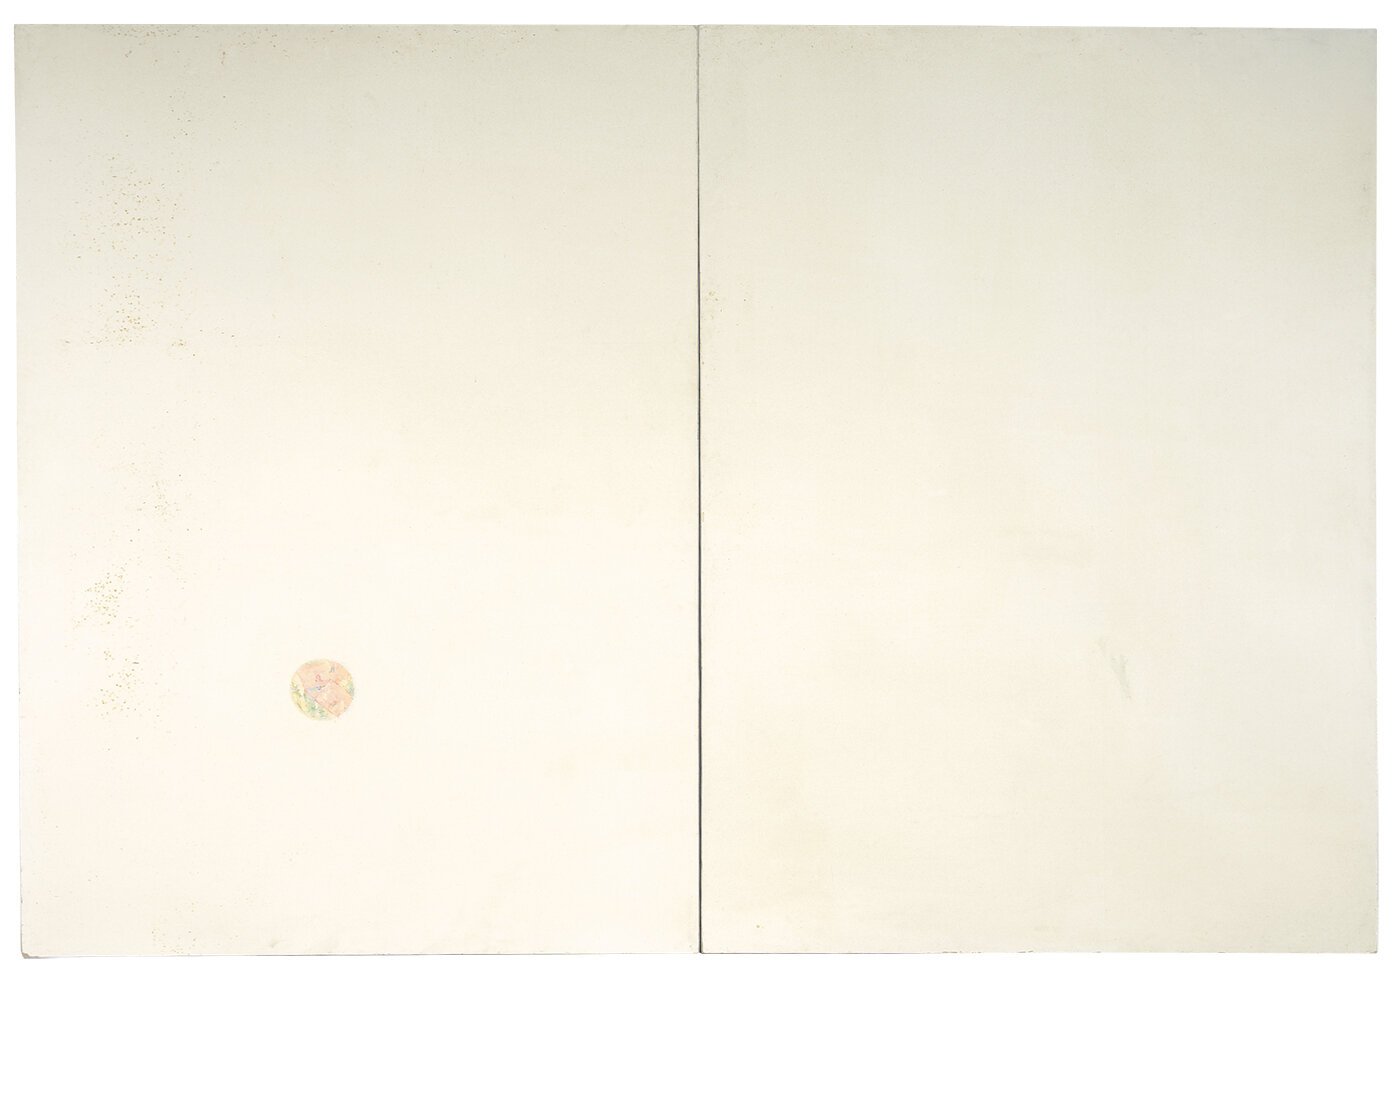 White-Covers-Everything-by-Itself-1978-Oil-and-enamel-on-Masonite-Signed-and-.jpg